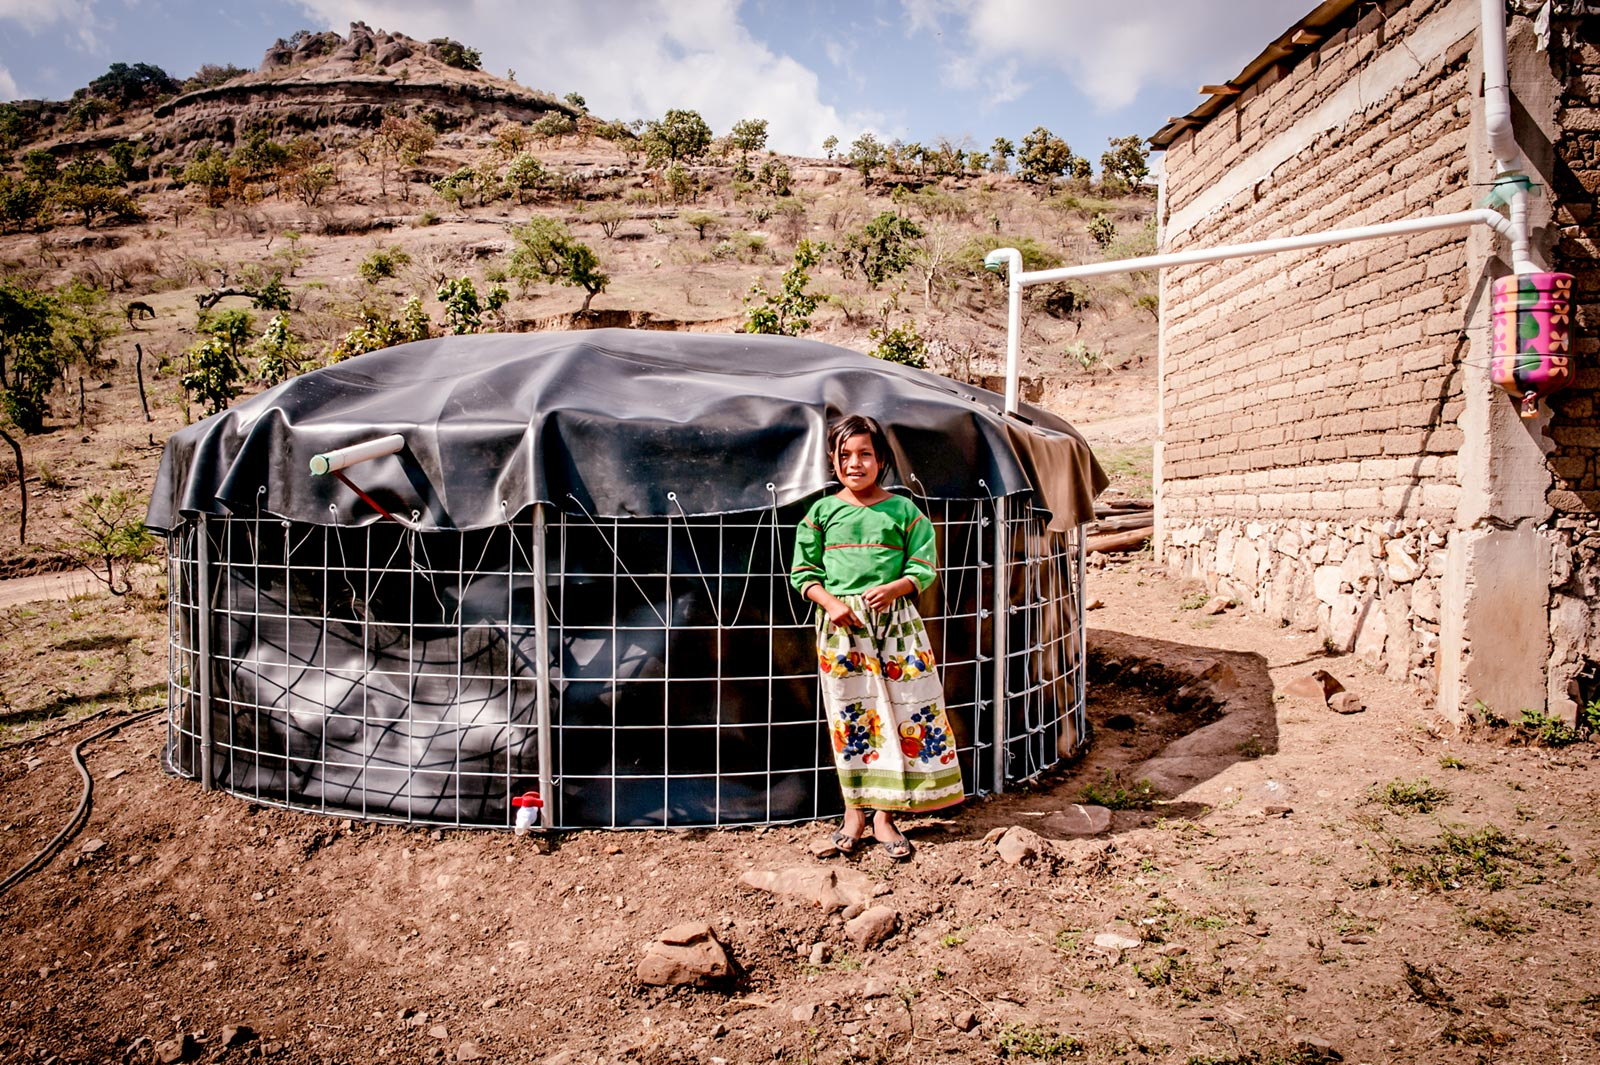 Rural System. Jalisco. Image Credit: Cate Cameron